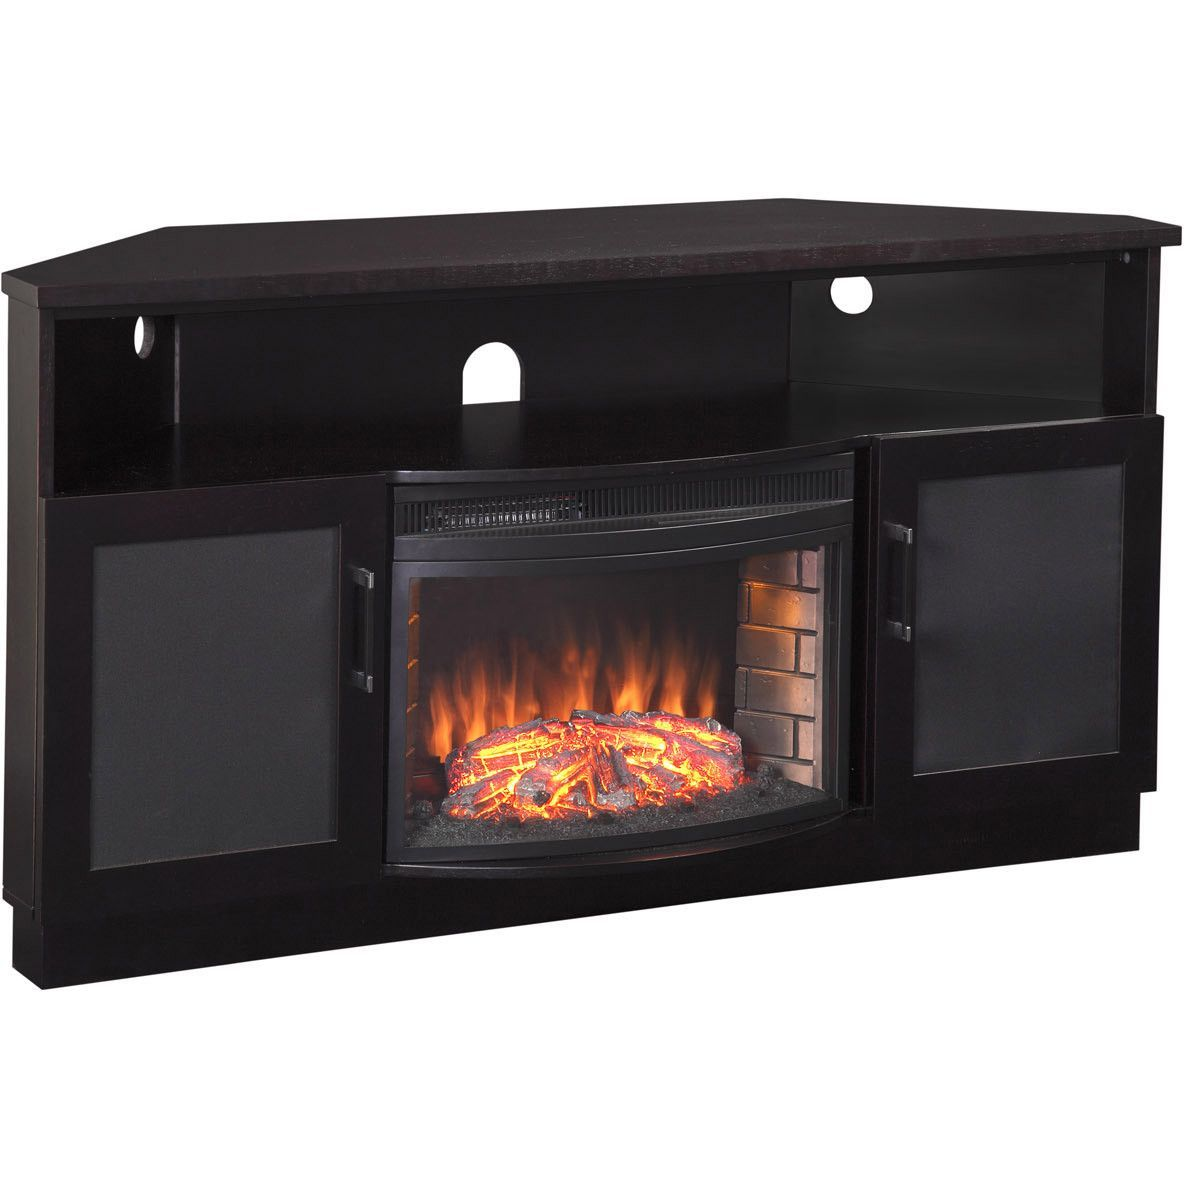 Furnitech Corner Tv Stand Electric Fireplace For 65 Tv Ft60cccfb